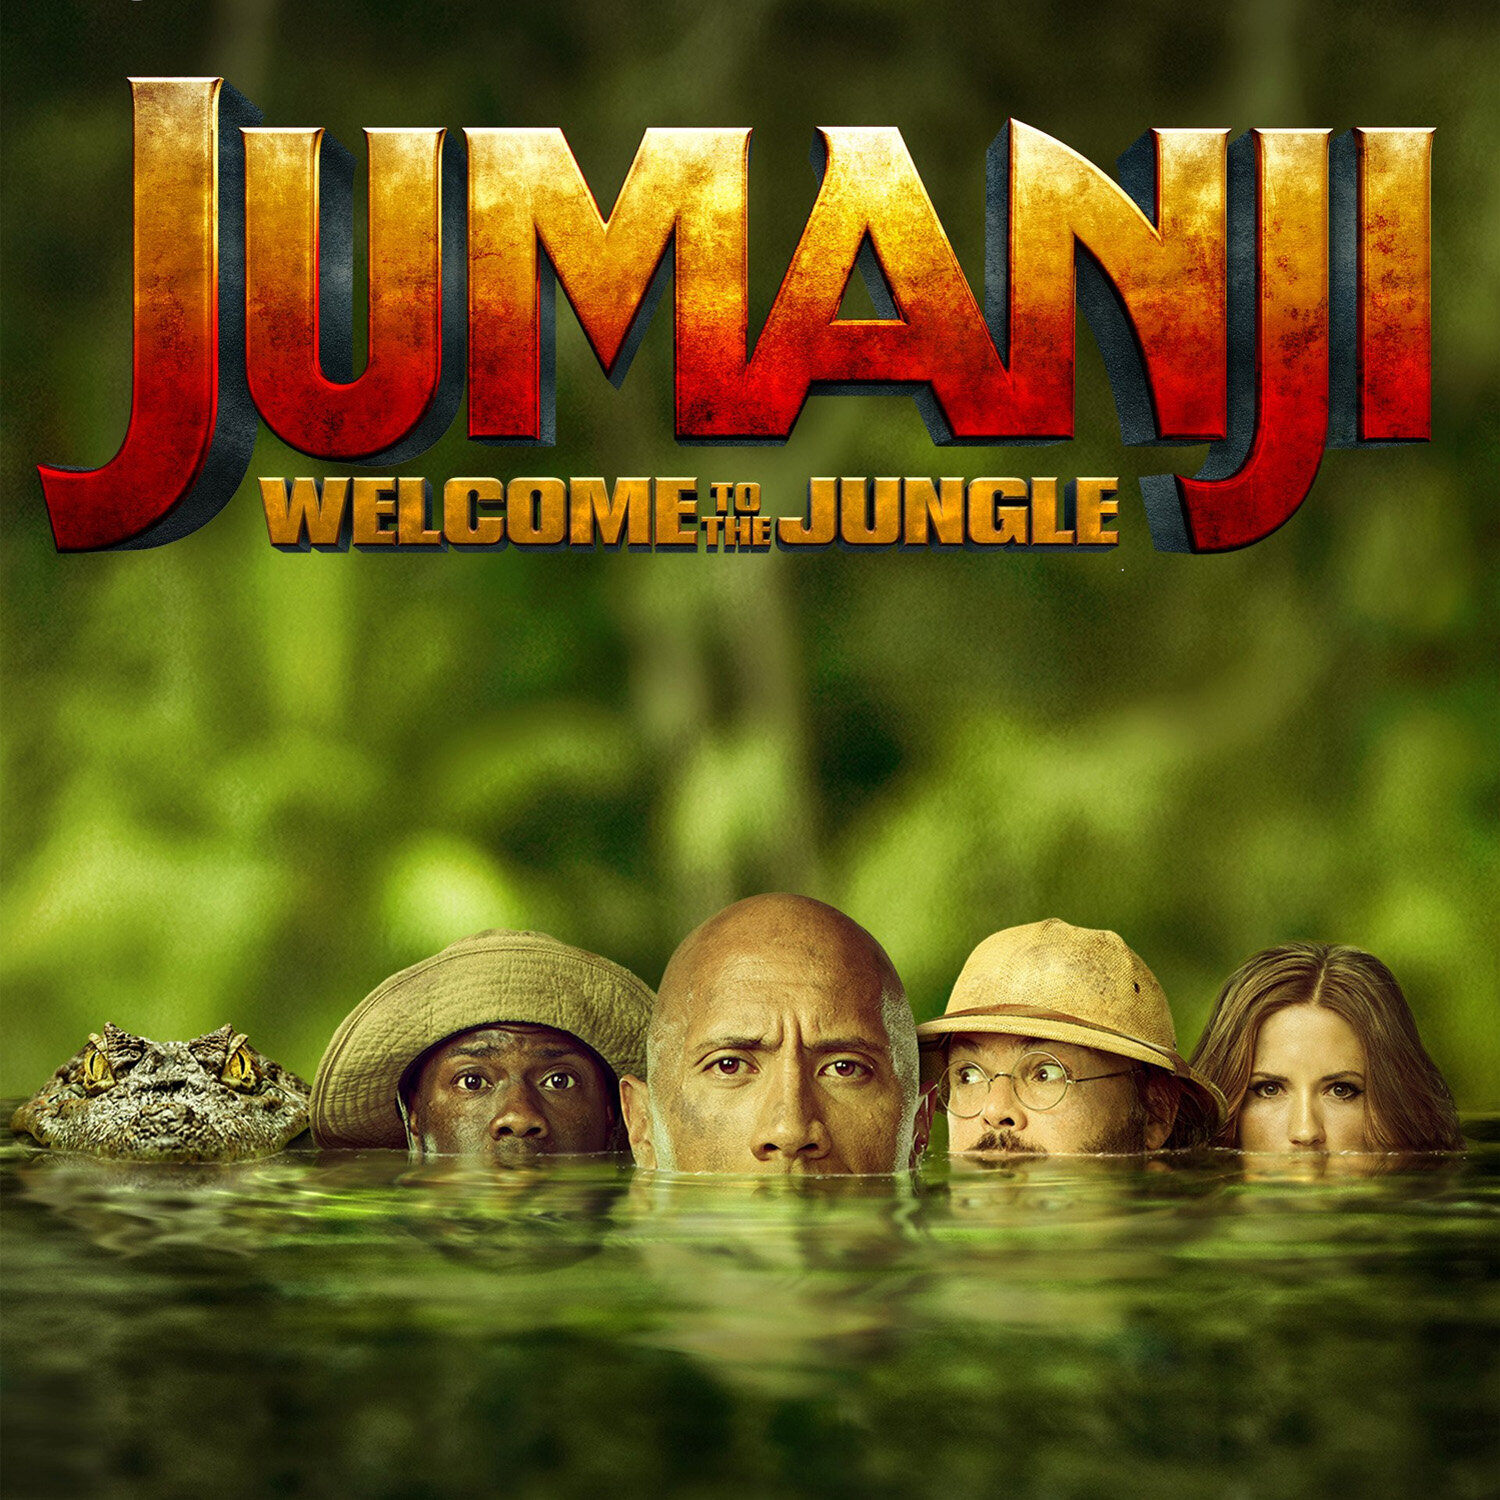 Jumanji Welcome to the Jungle.jpg